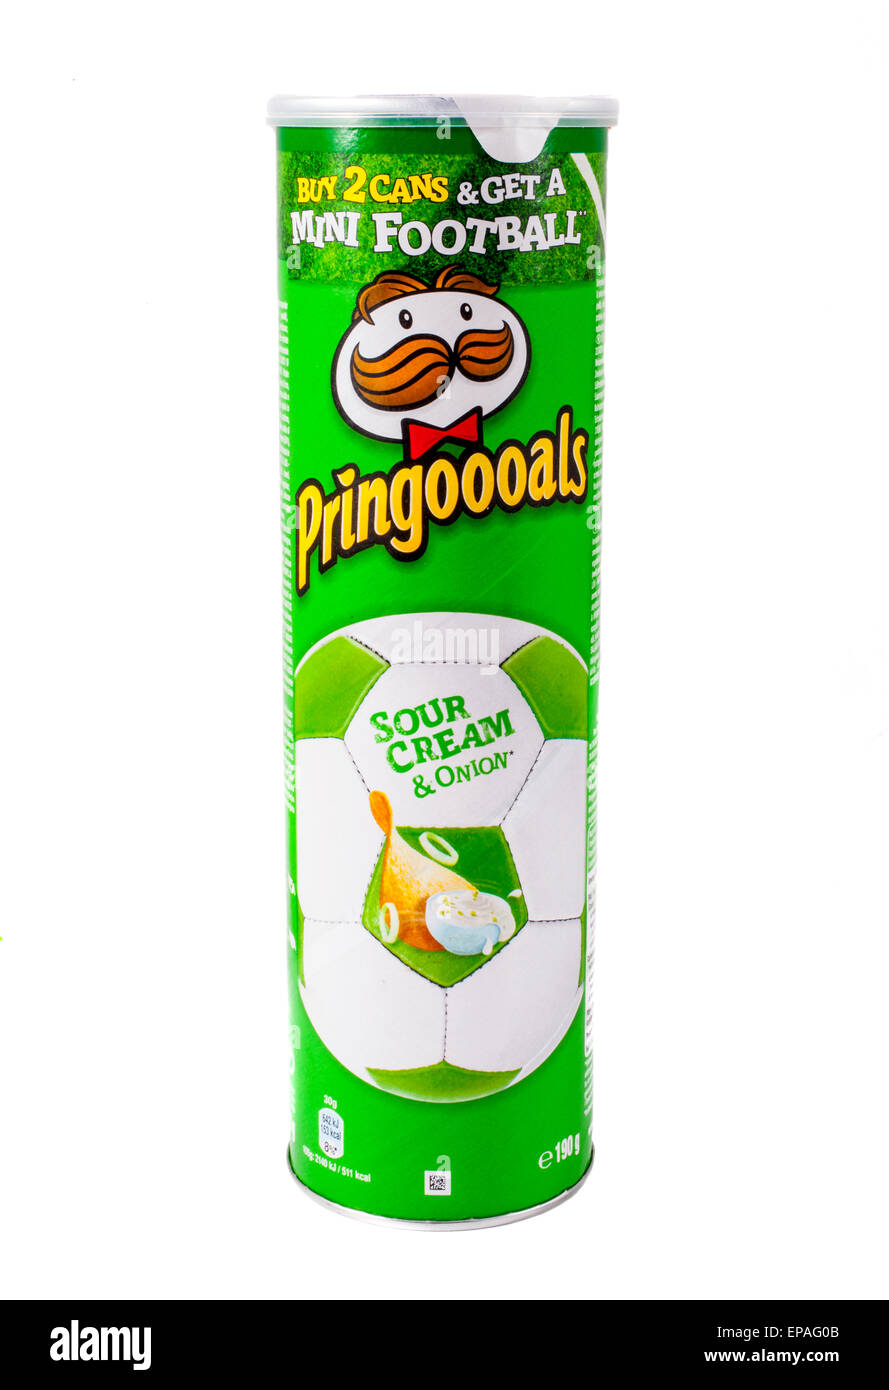 LONDON, UK - MAY 7TH 2015: An unopened tube of Sour Cream and Onion Pringles over a plain white background. - Stock Image